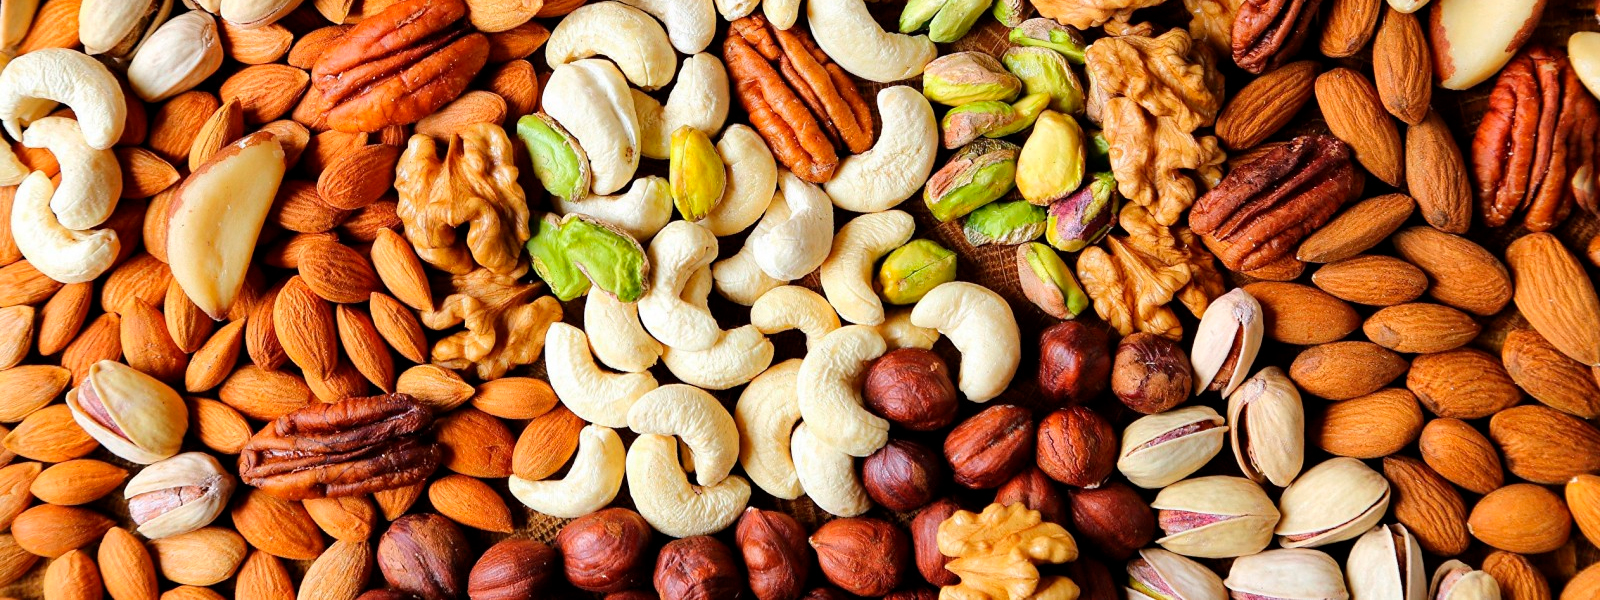 banner-carino-ingredientes-nuts-amendoim-castanha-amendoas-avela